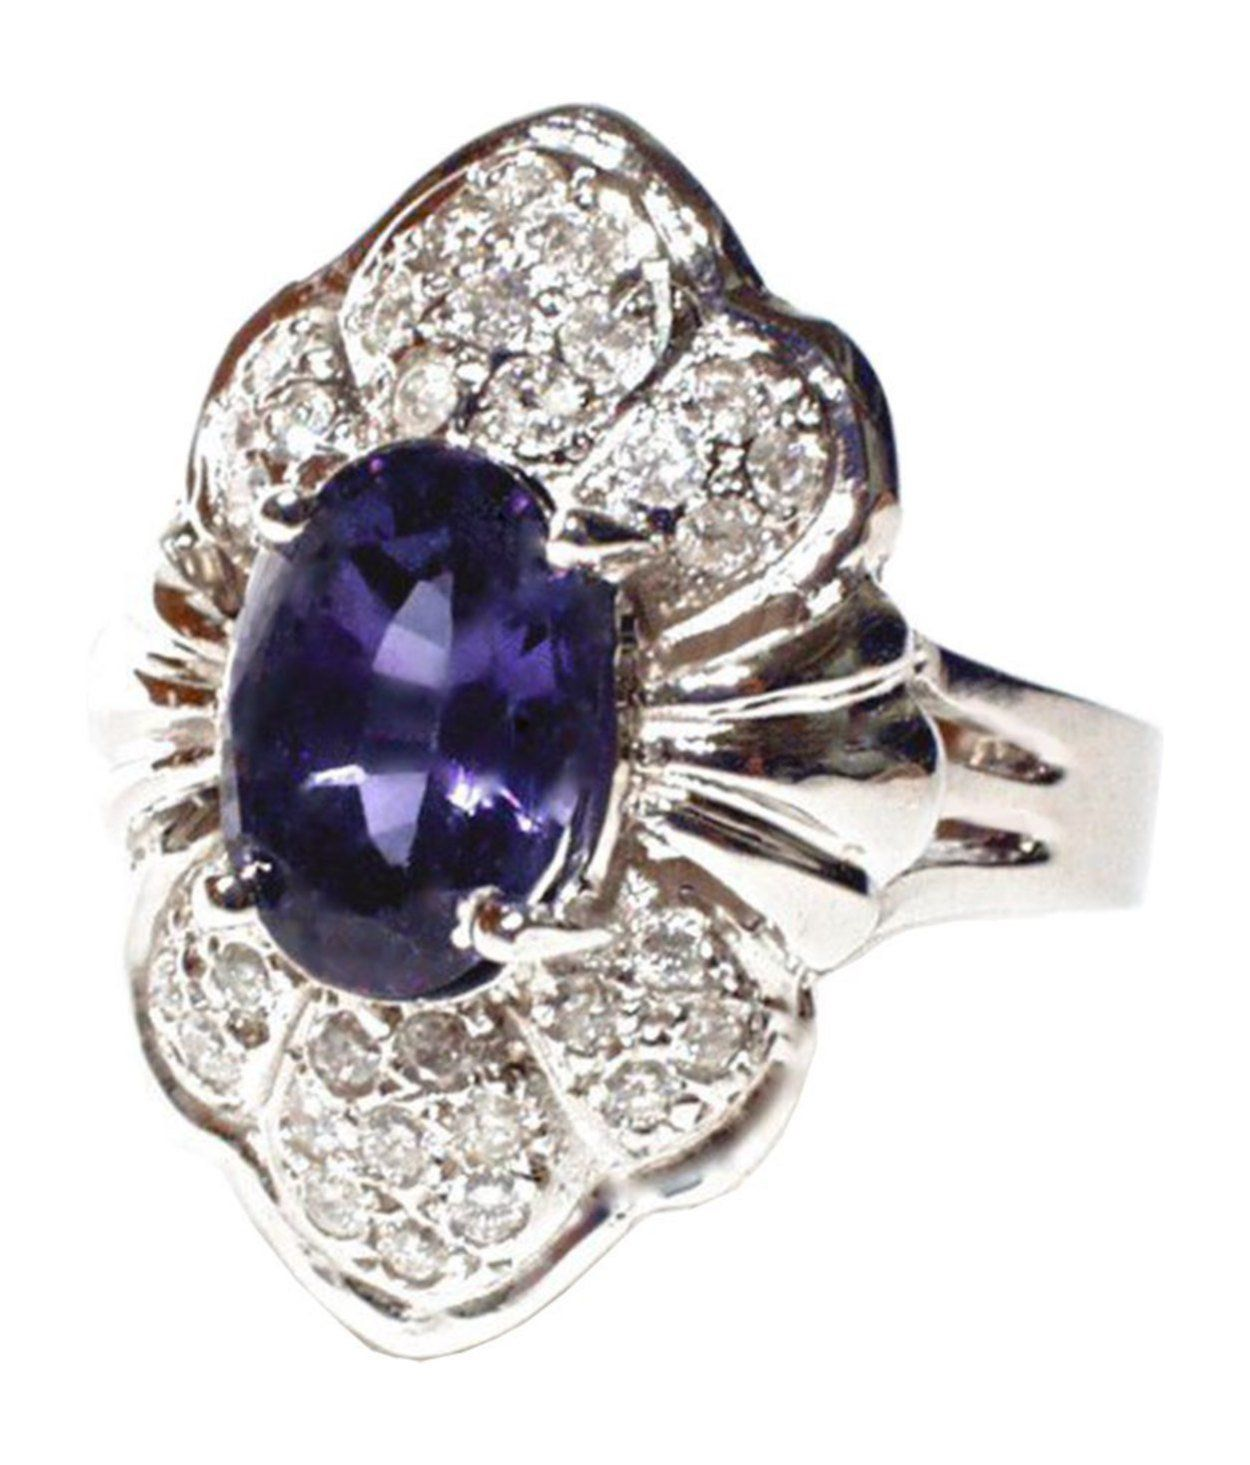 2.5 cttw 14k White Gold Art Deco Tanzanite and Diamond Cocktail Ring Handcrafted In USA ((L0400) Womens Size 4)